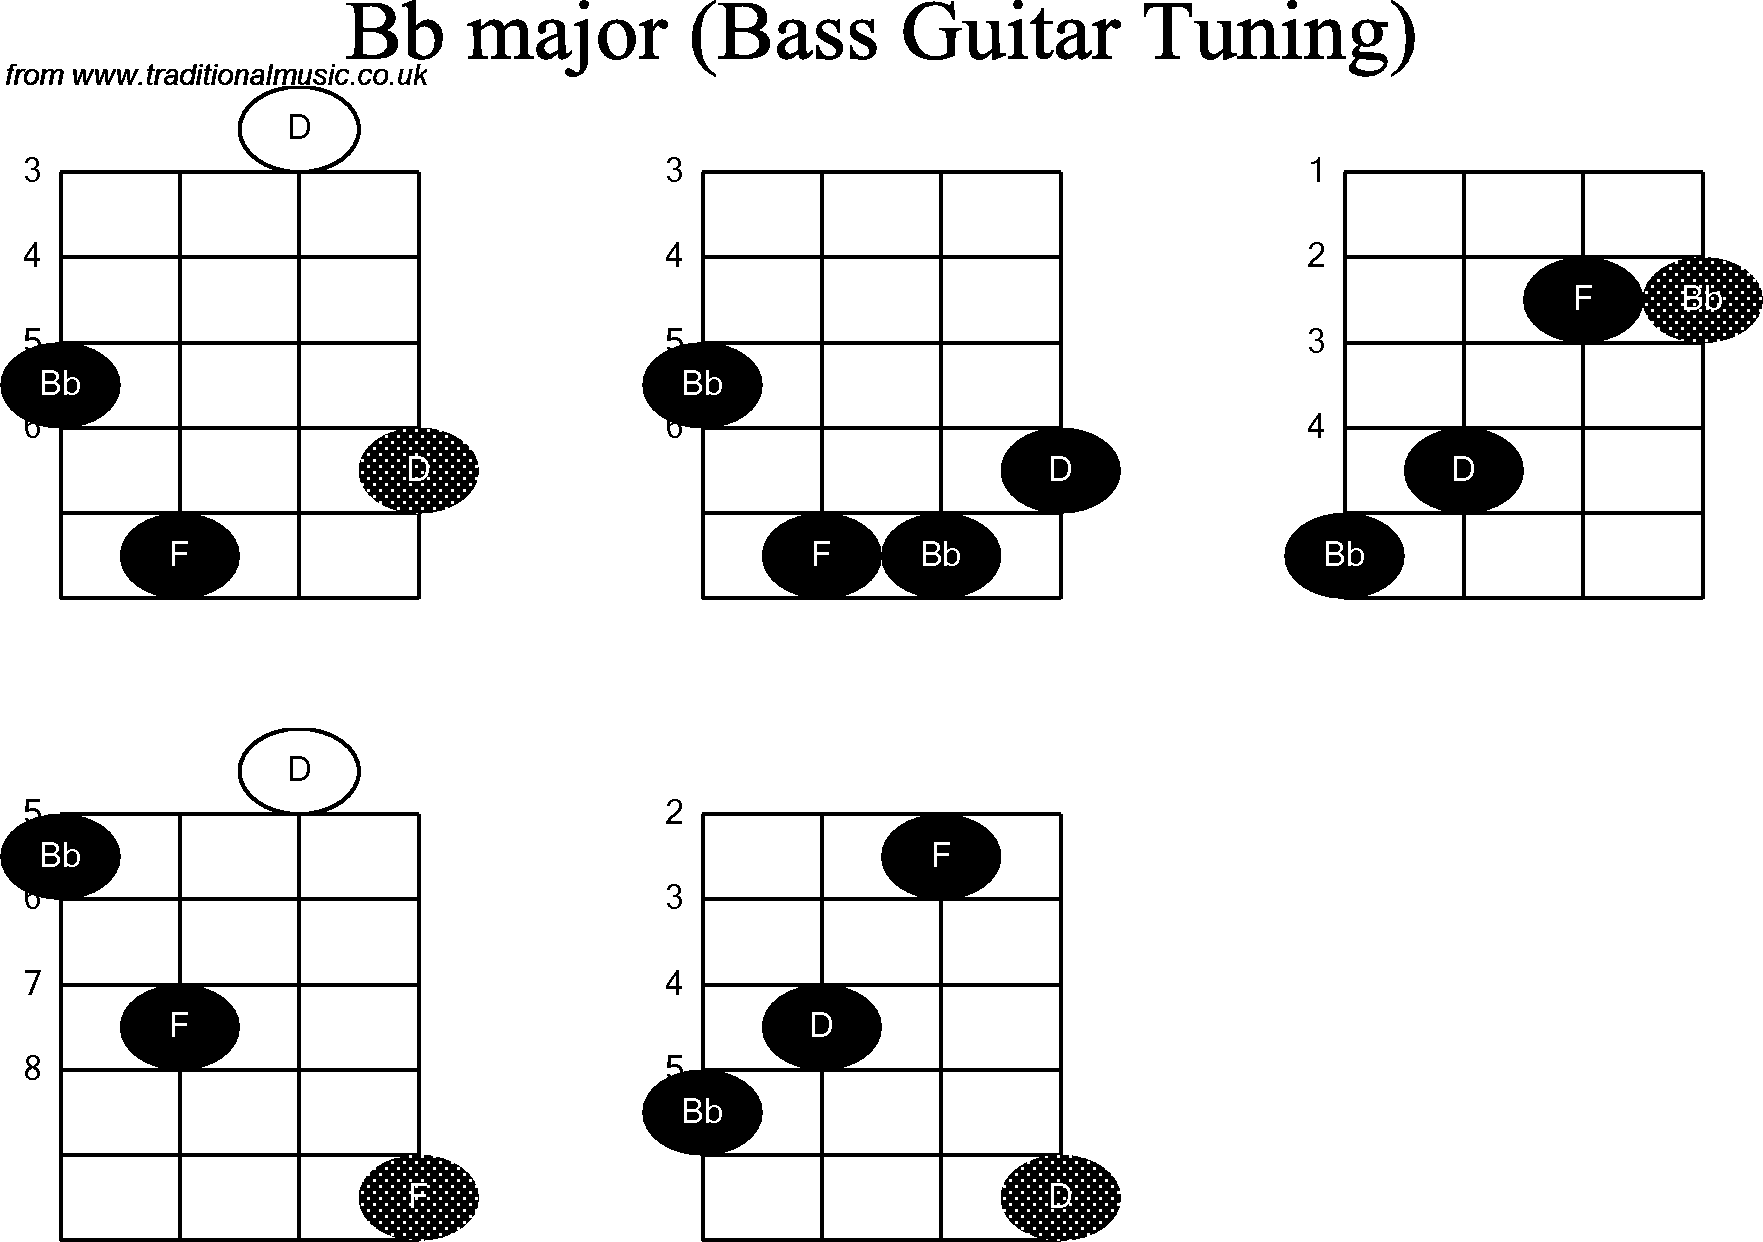 News And Entertainment Guitar Chord Dec 31 2012 100742 Open Diagram Http Traditionalmusiccouk Chords Bass Bb